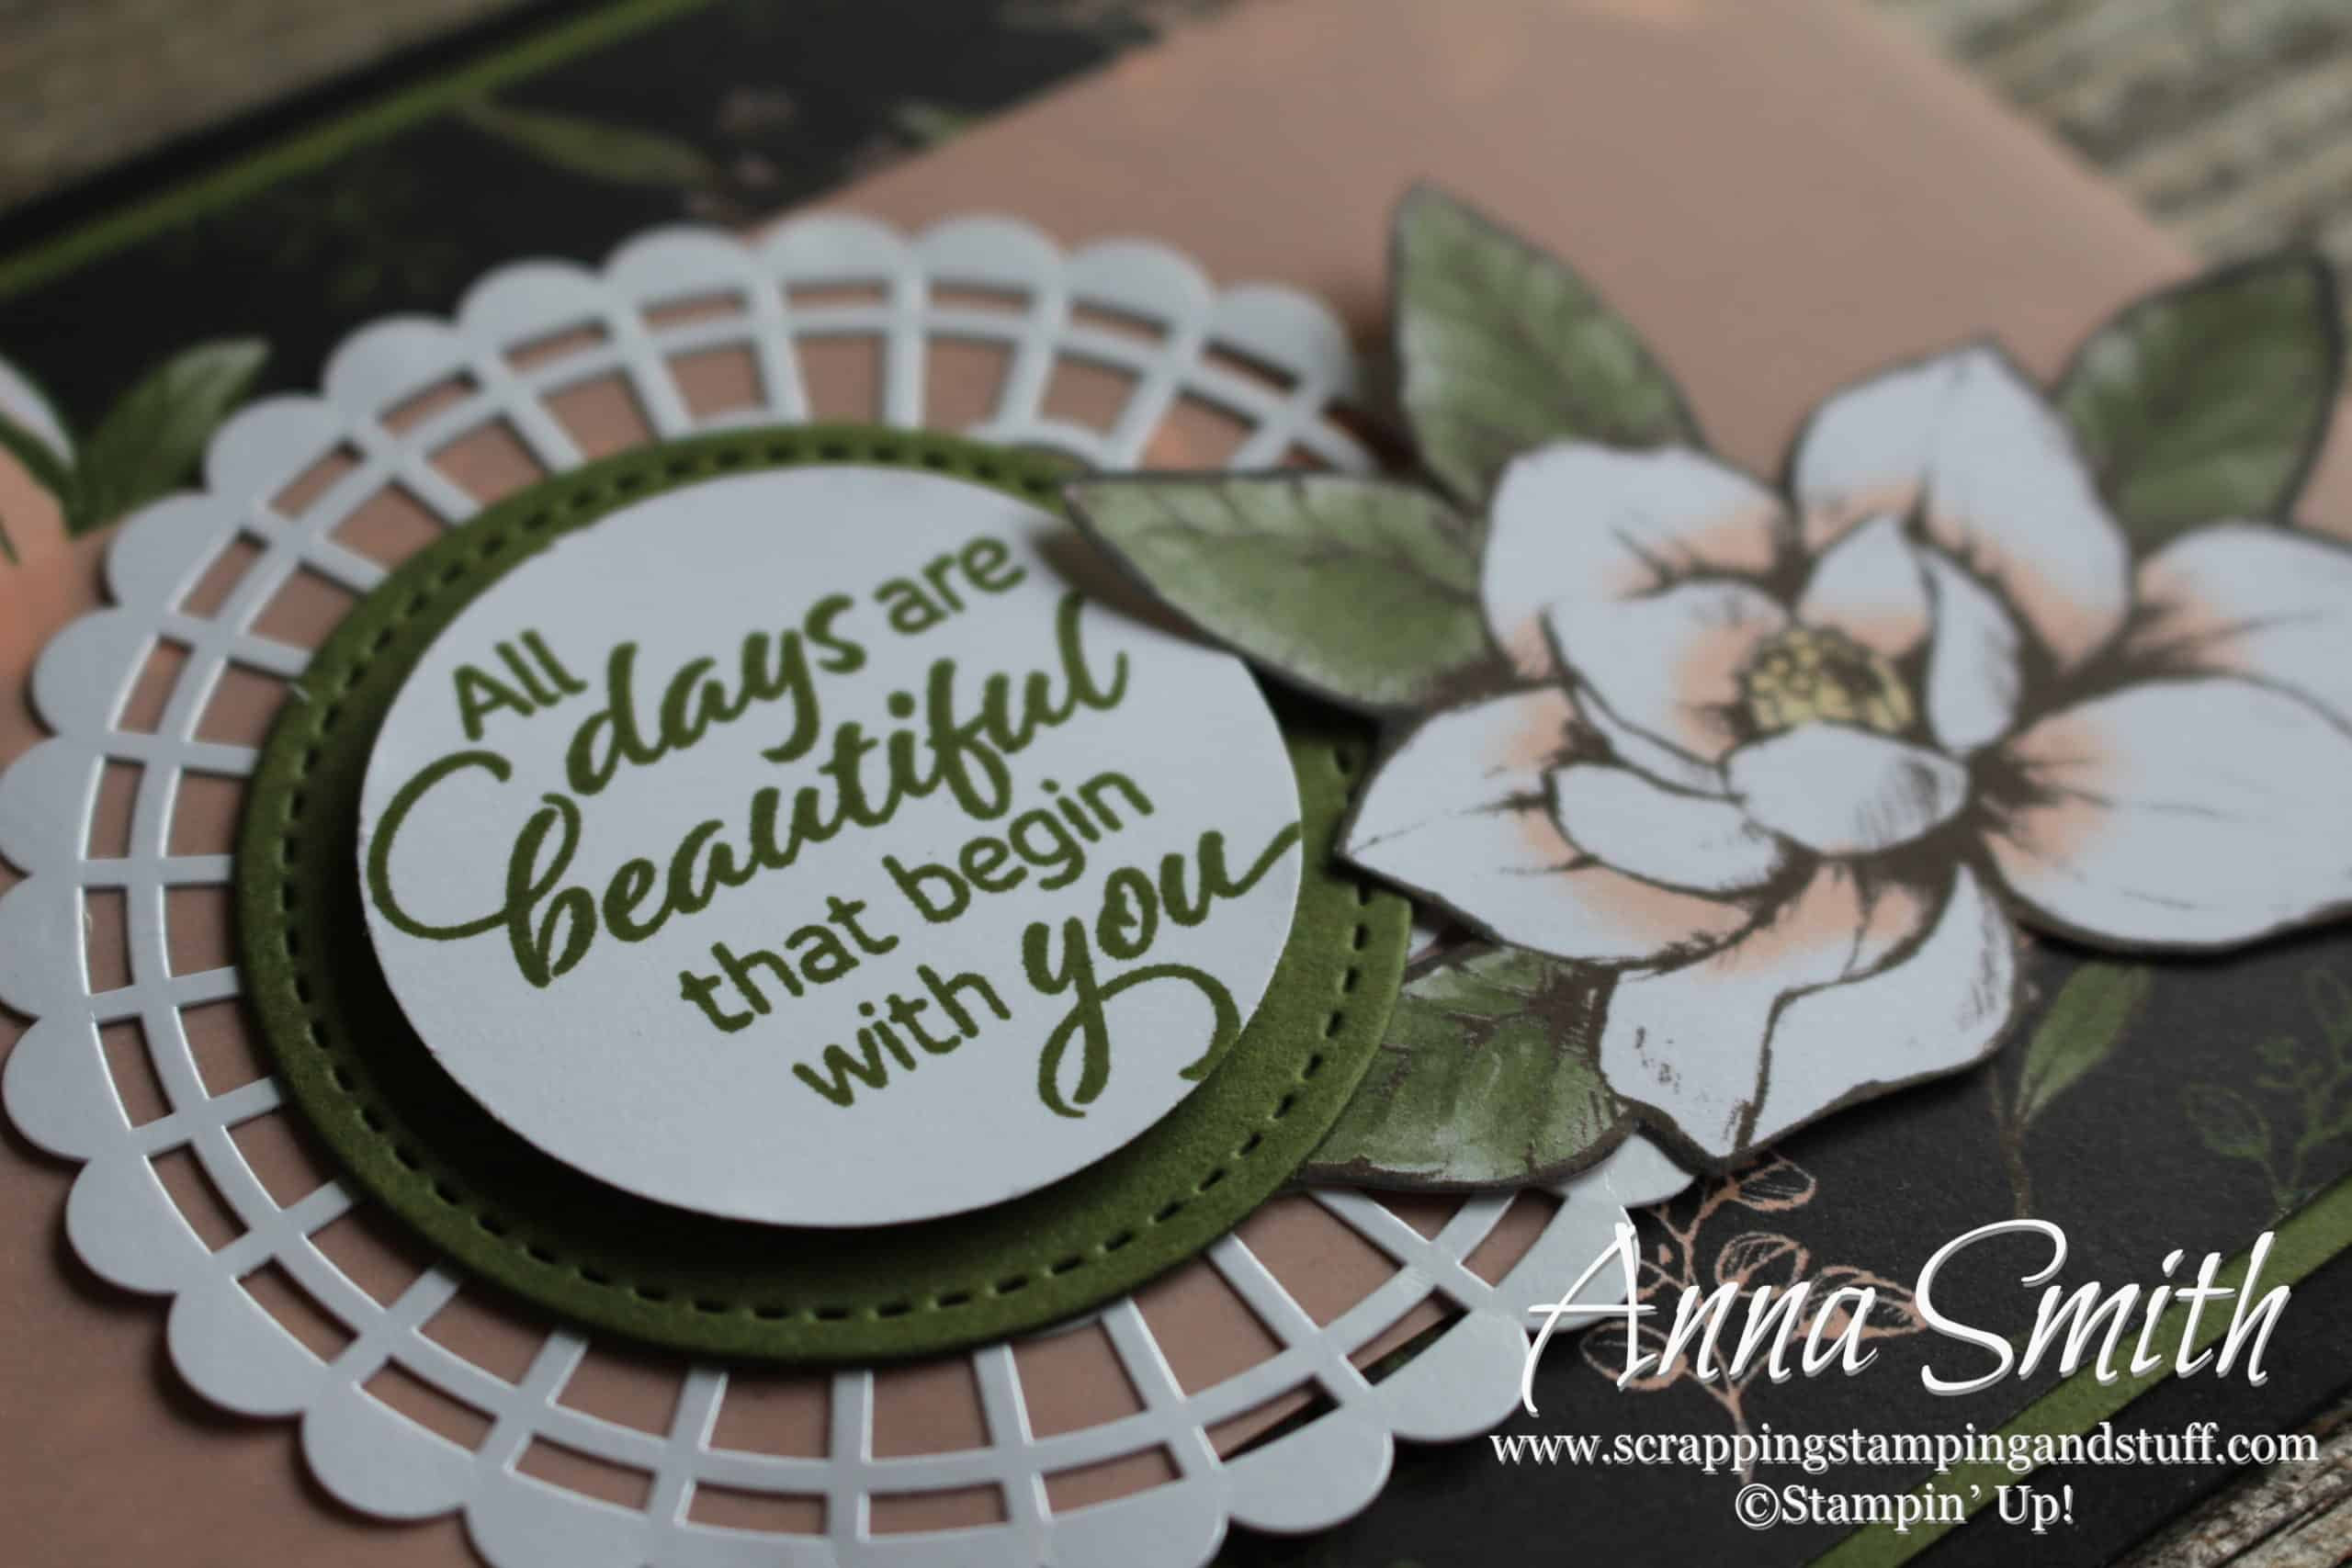 Introducing Stampin Up Magnolia Lane Scrapping Stamping And Stuff